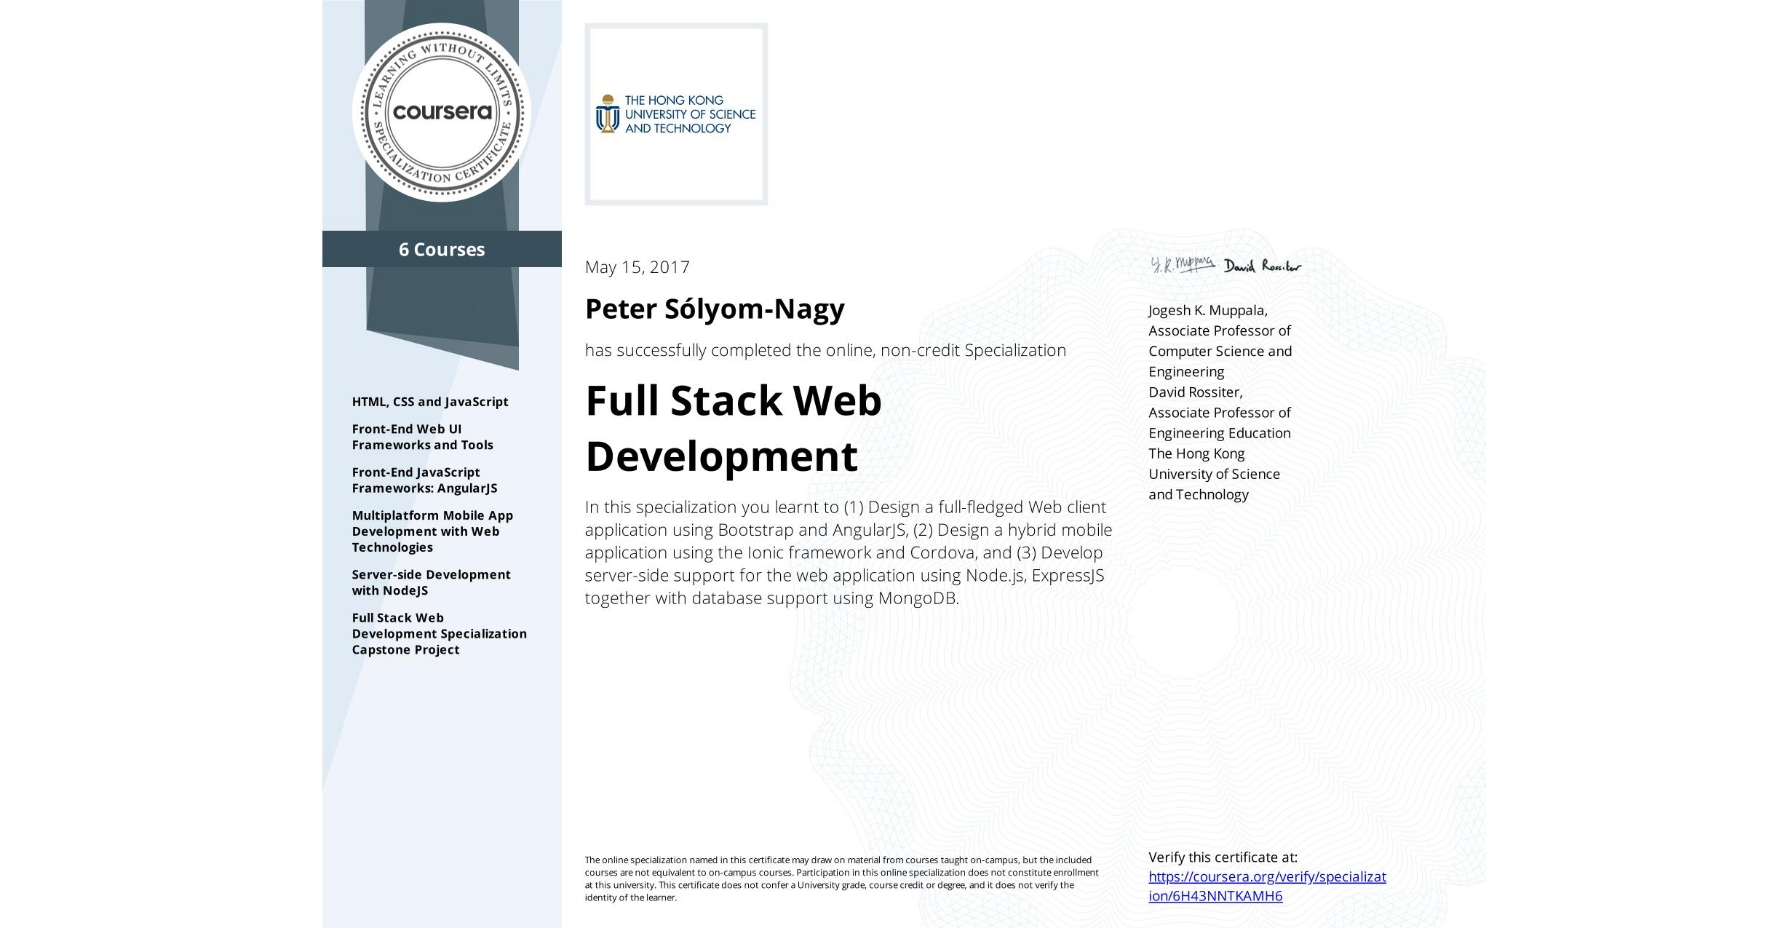 View certificate for Peter Sólyom-Nagy, Full Stack Web Development, offered through Coursera. In this specialization you learnt to (1) Design a full-fledged Web client application using Bootstrap and AngularJS, (2) Design a hybrid mobile application using the Ionic framework and Cordova, and (3) Develop server-side support for the web application using Node.js, ExpressJS together with database support using MongoDB.